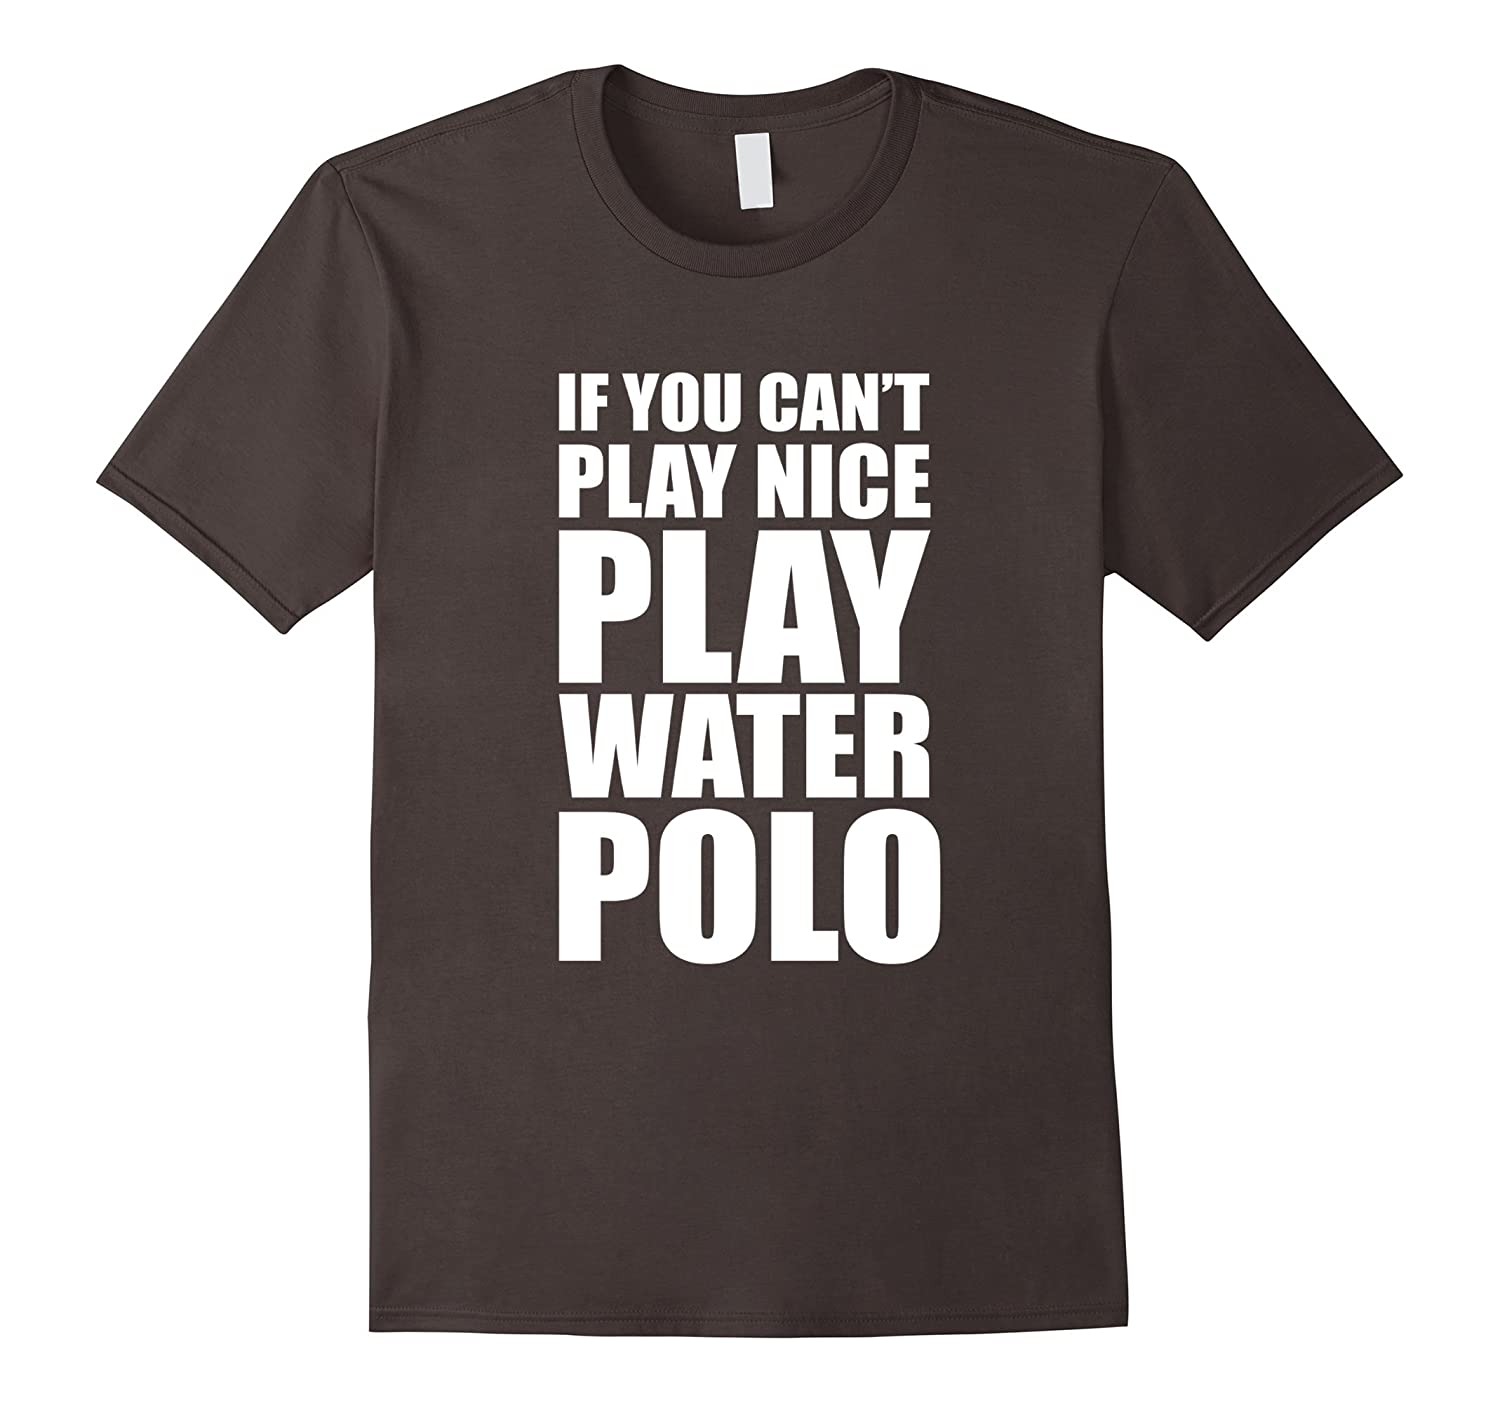 Learn to Play Water Polo - Water Polo Videos | iSport.com